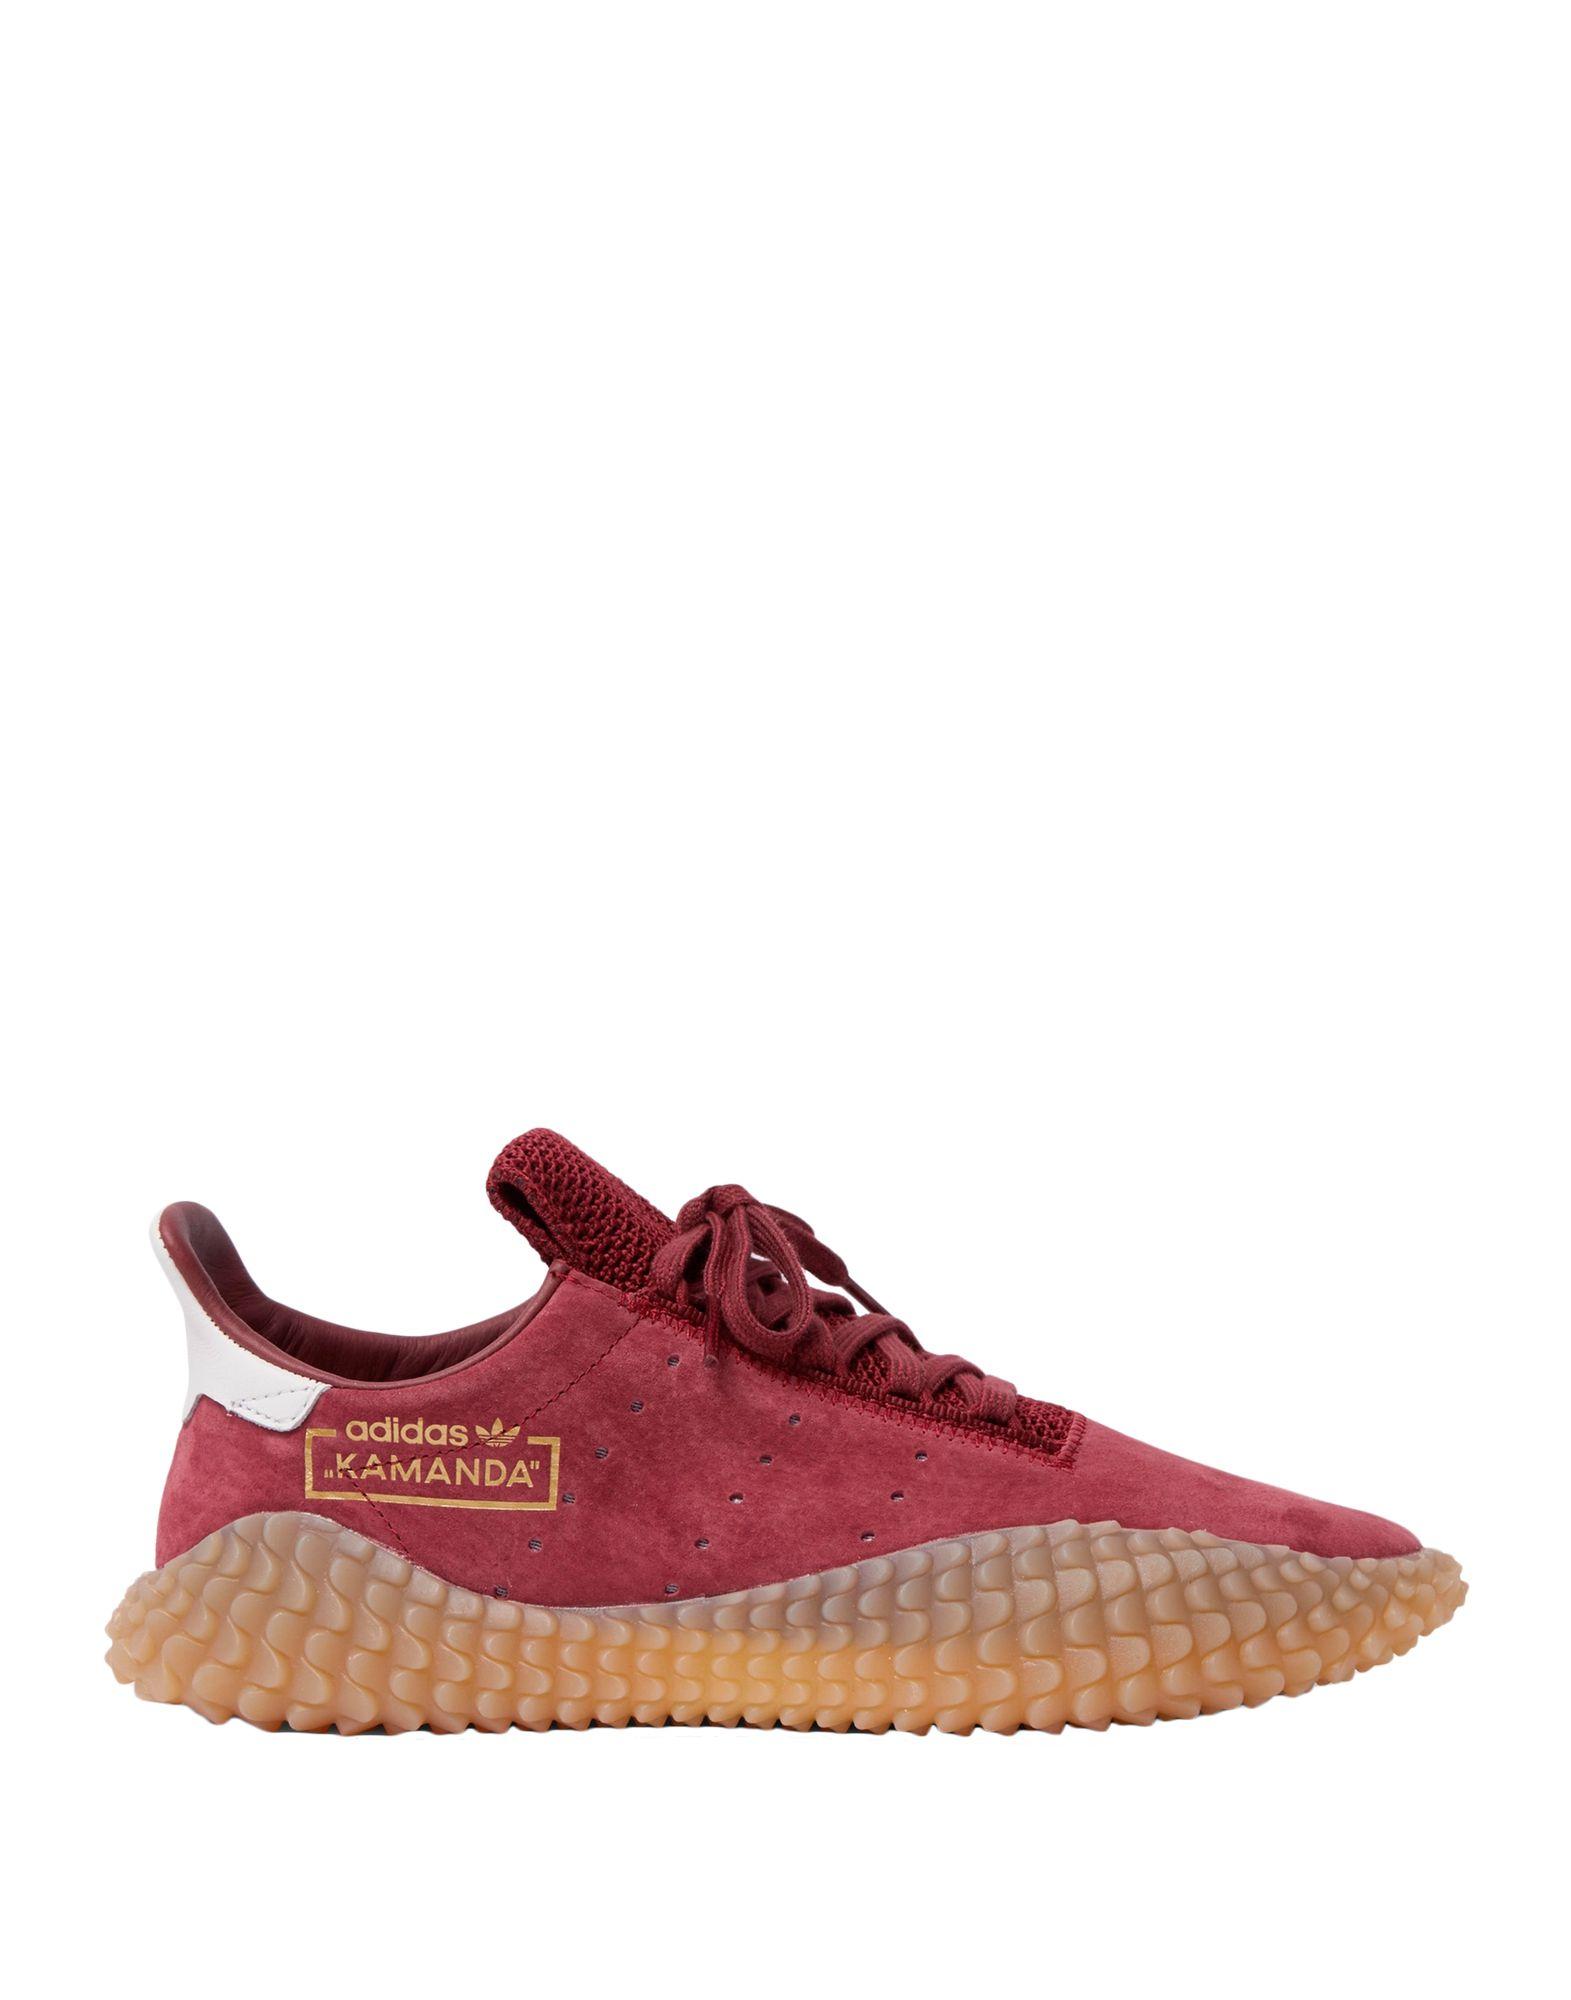 knitted, leather, suede effect, logo, solid color, laces, round toeline, flat, fabric inner, rubber